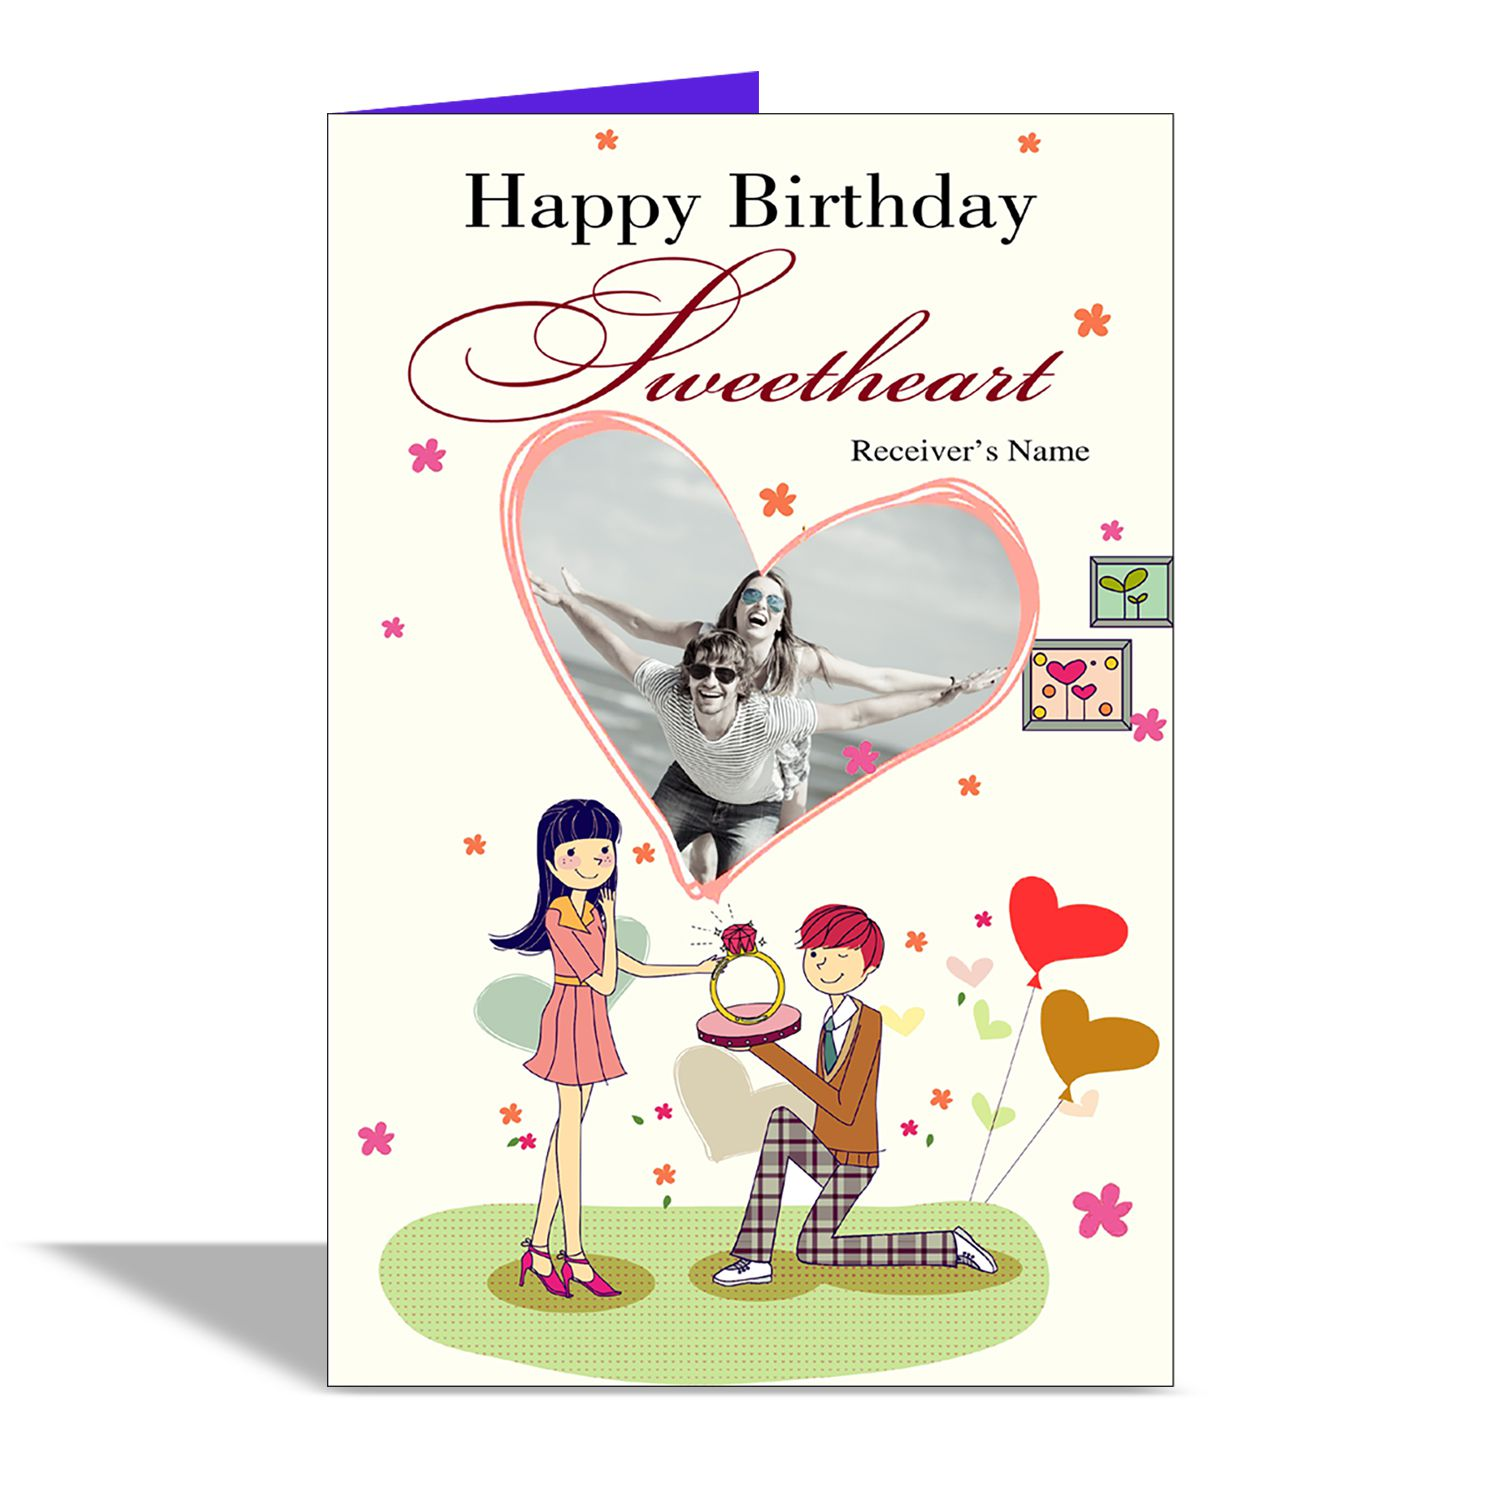 Alwaysgift Happy Birthday Sweetheart Greeting Card Buy Online At Best Price In India